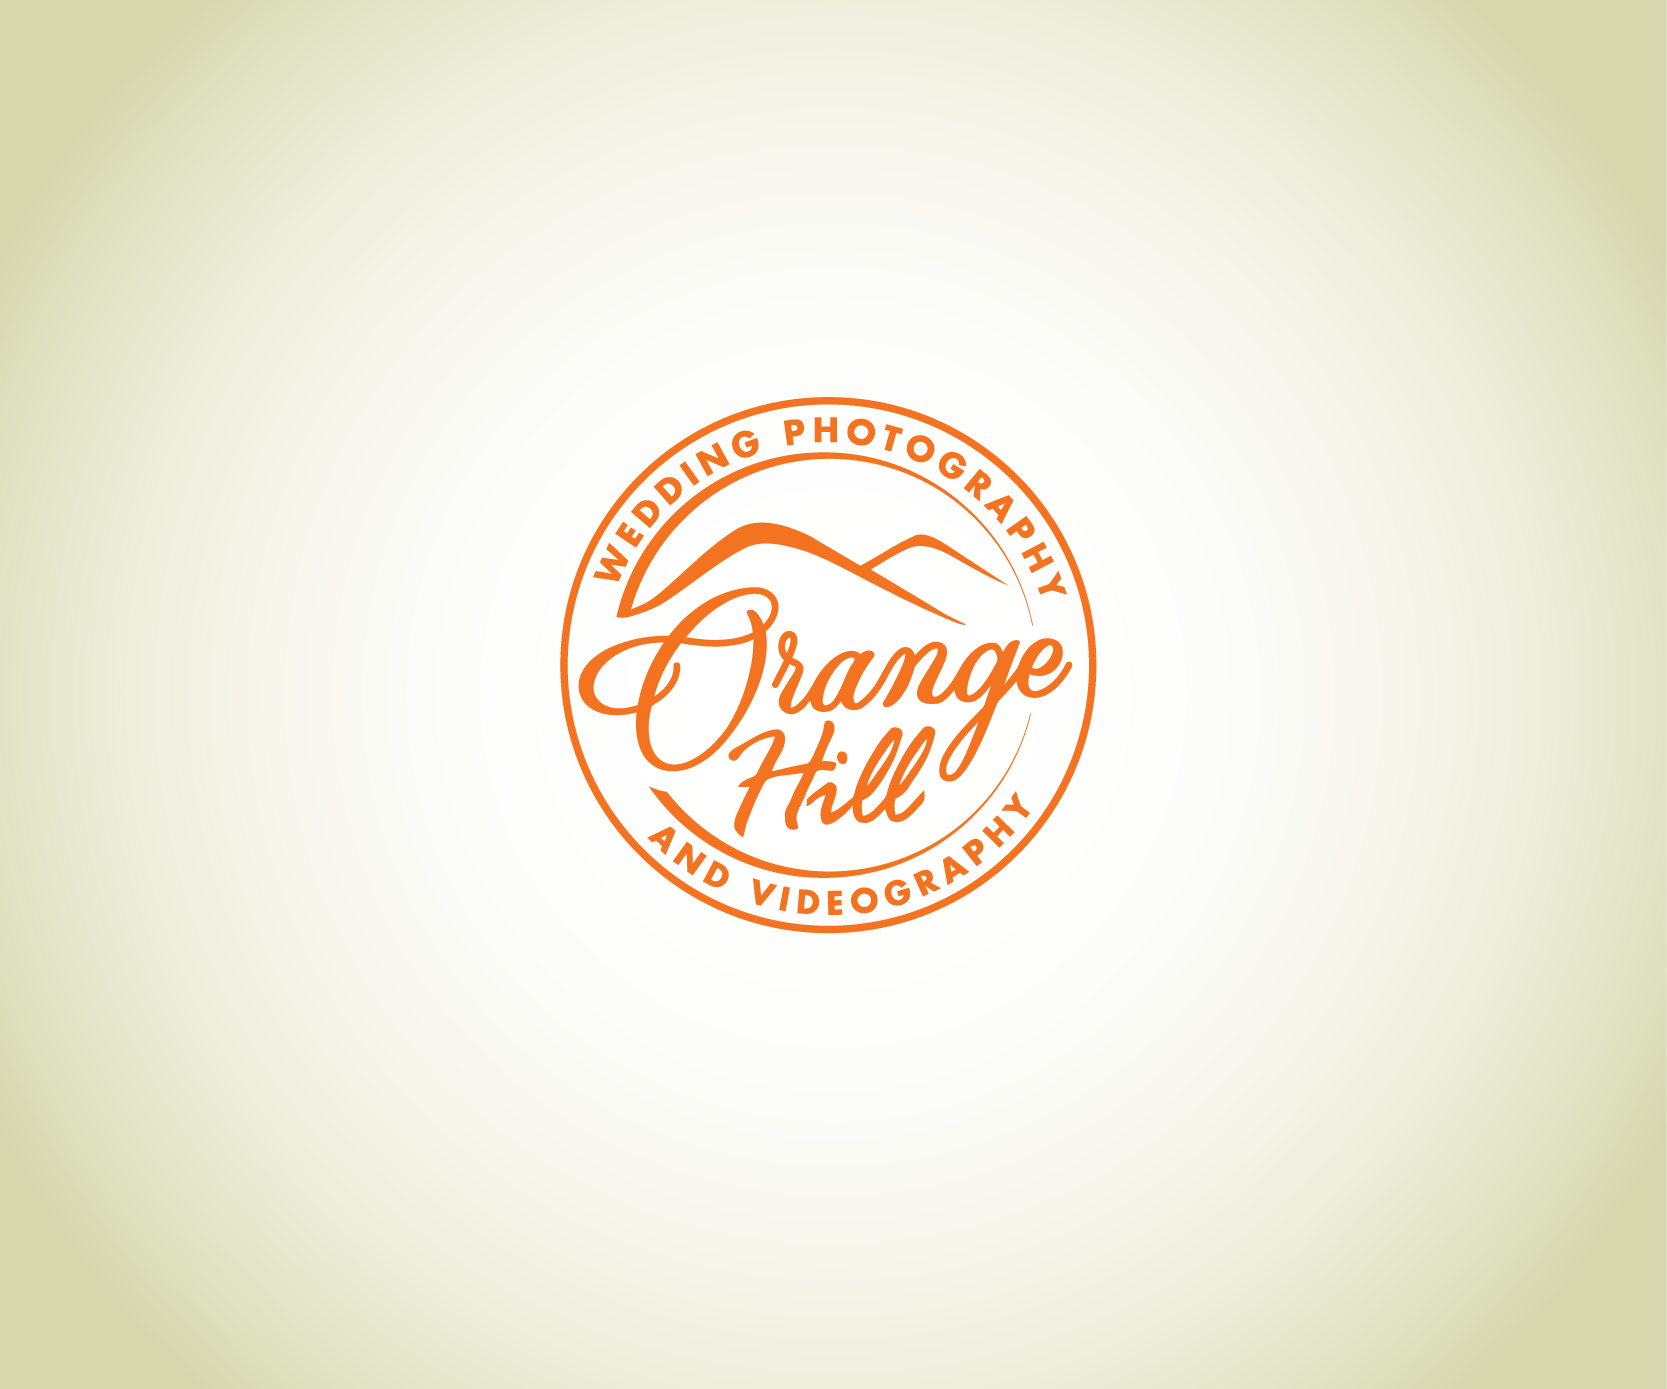 Create a trendy rustic or modern logo for Orange Hill photography and videography